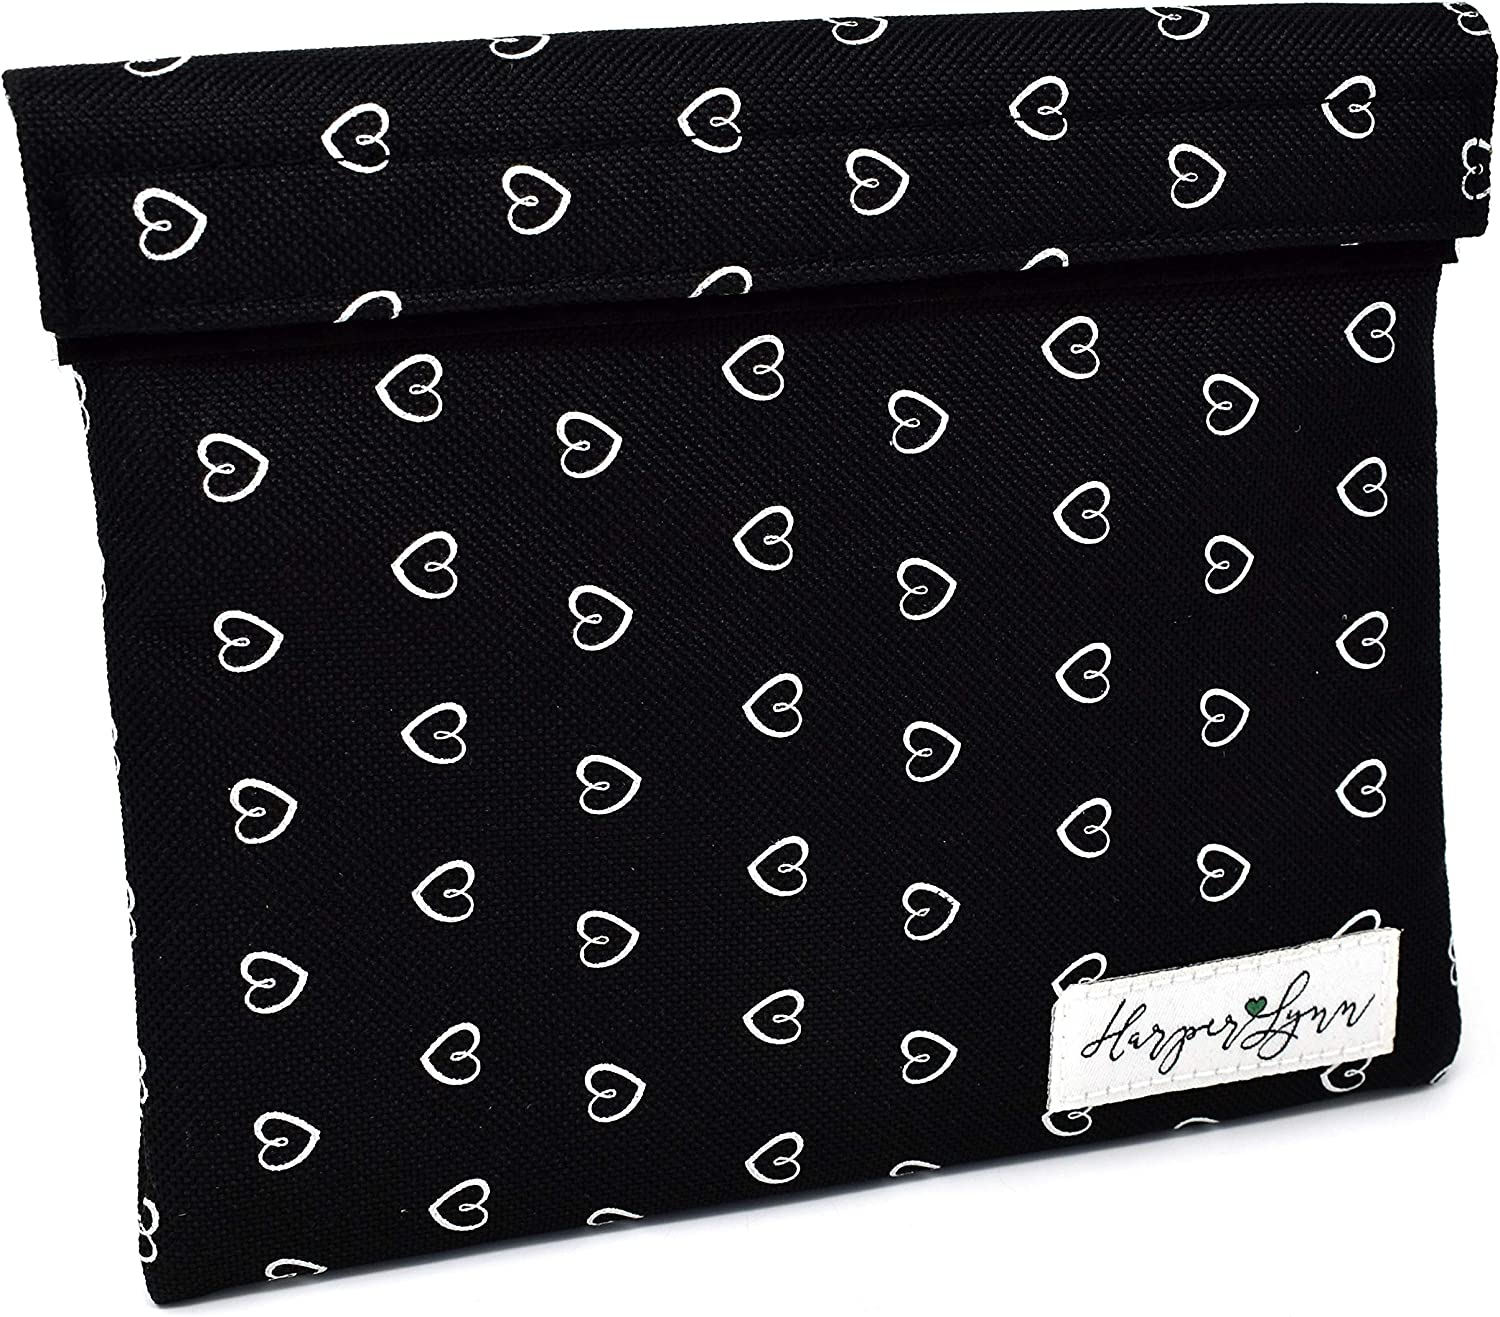 HarperLynn x Formline Directly managed store Smell Proof Bag Limited Special Price Pattern - 7